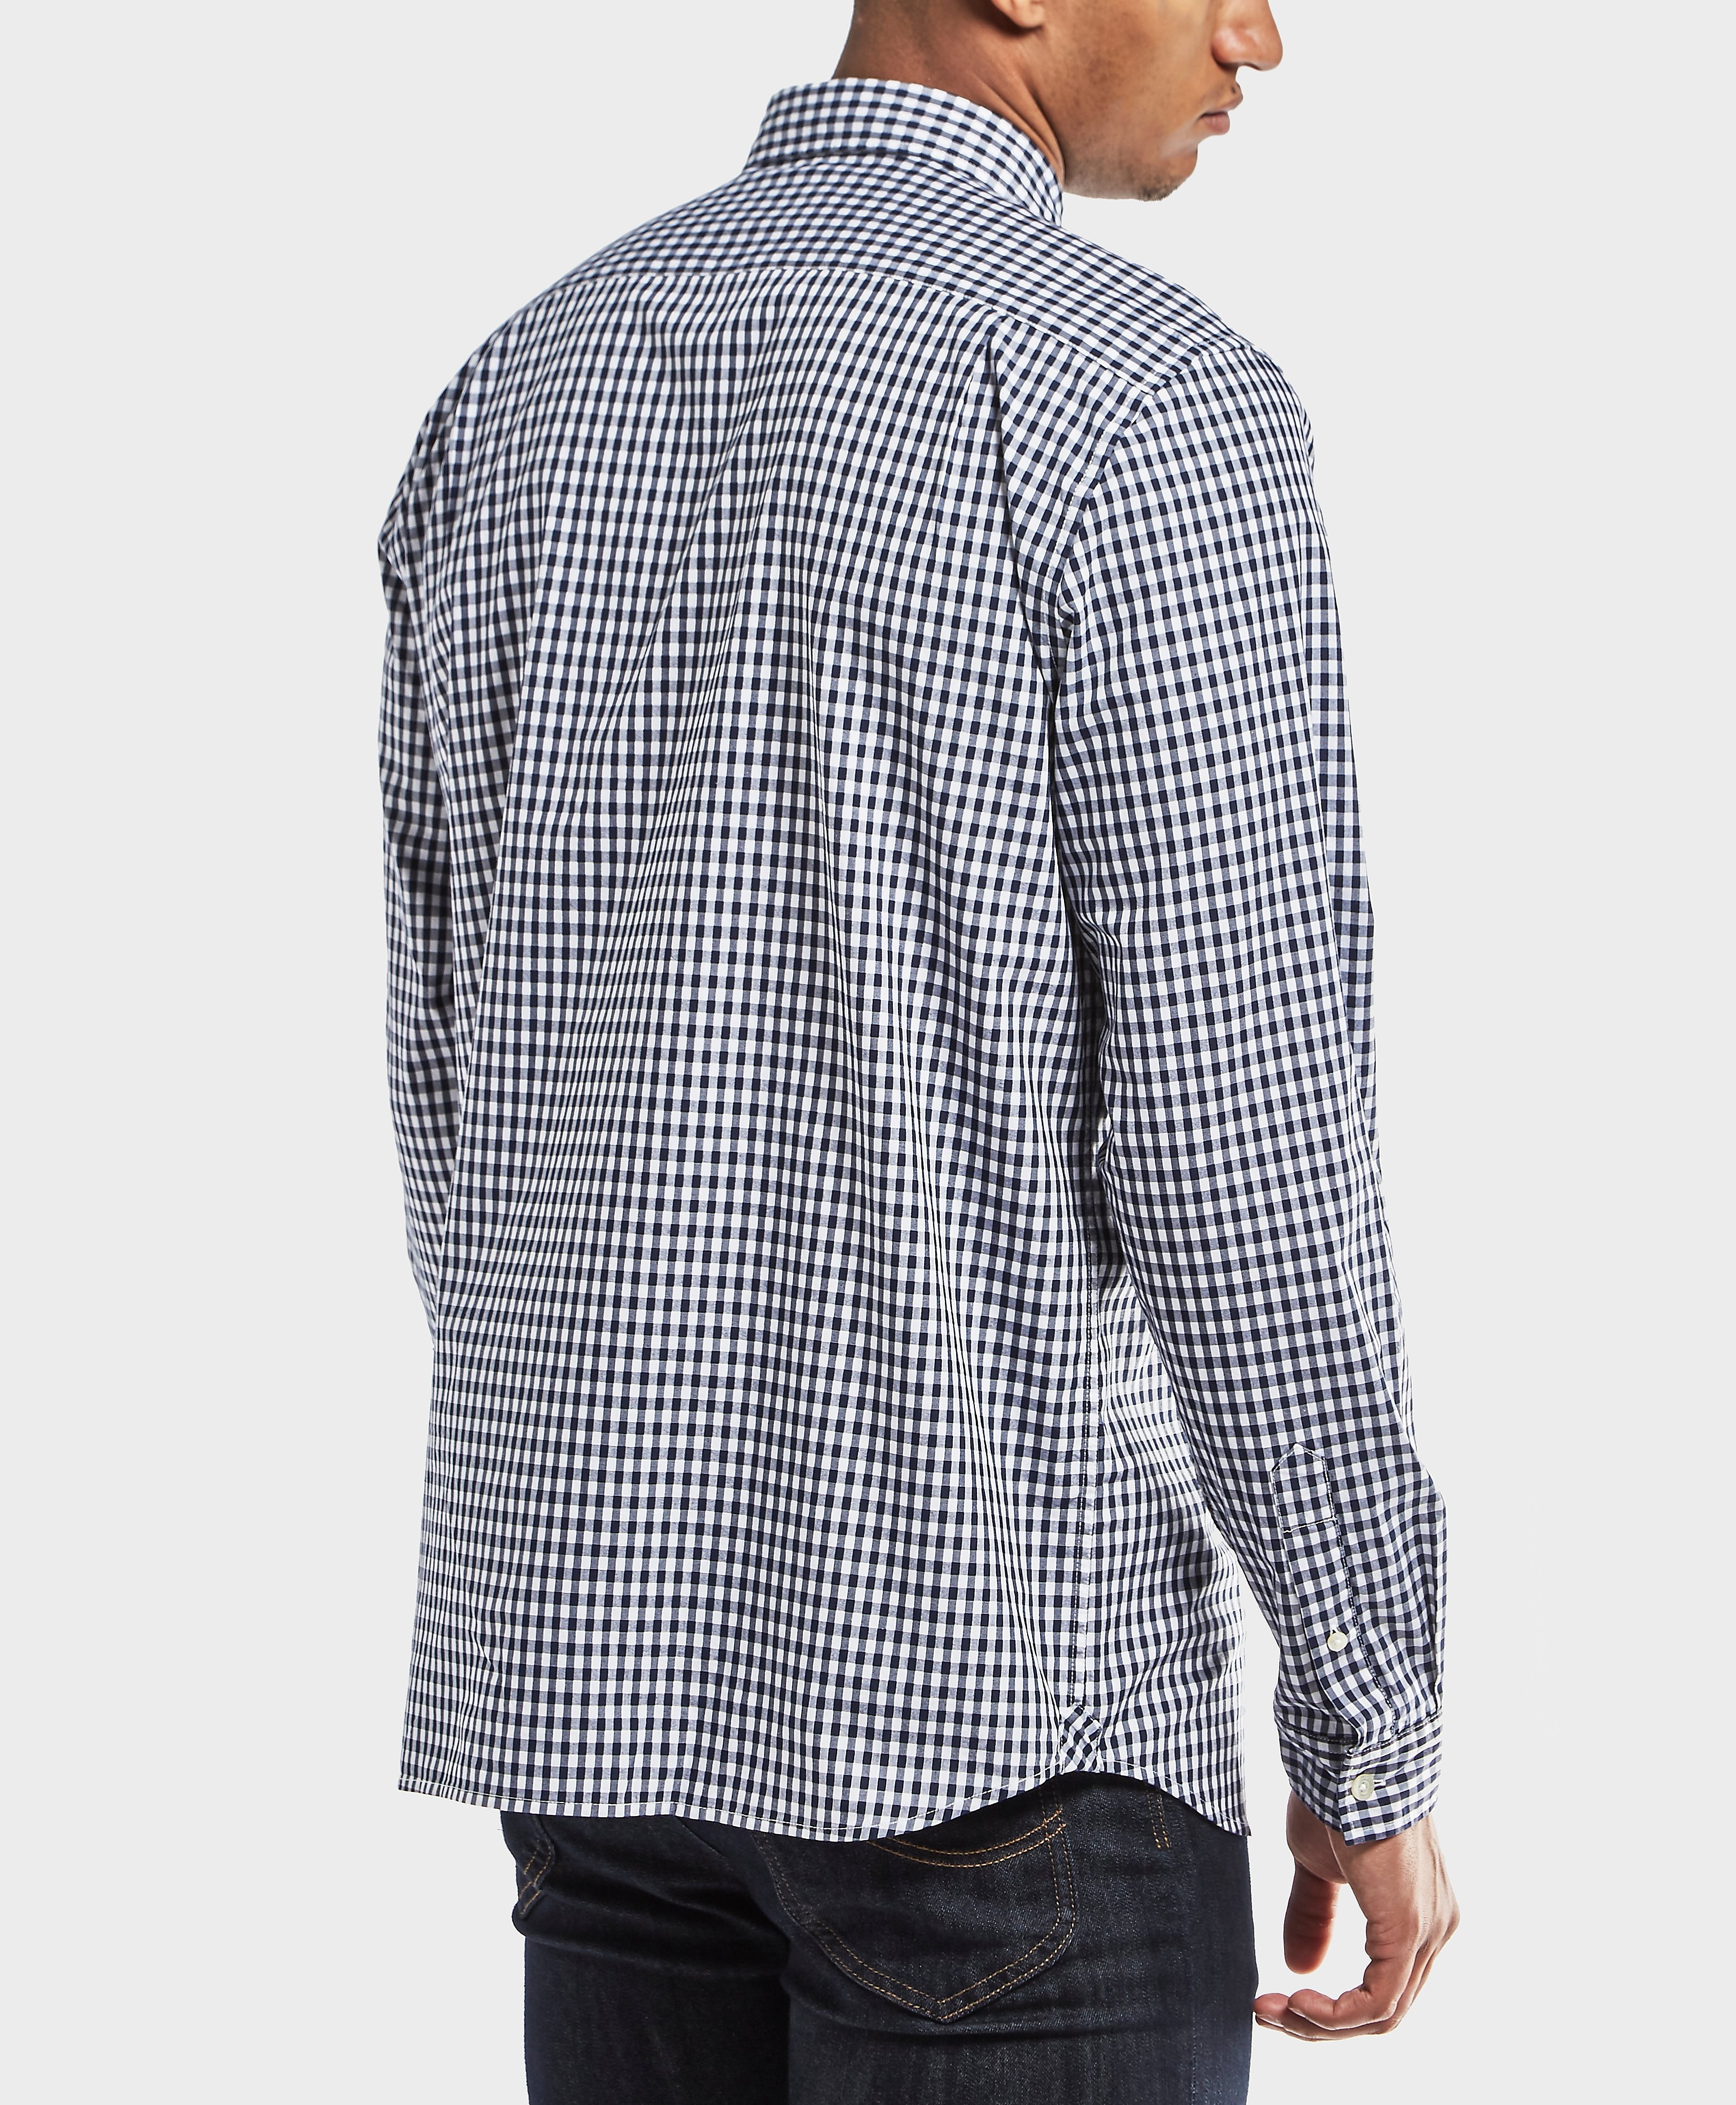 Lacoste Gingham Poplin Long Sleeve Shirt